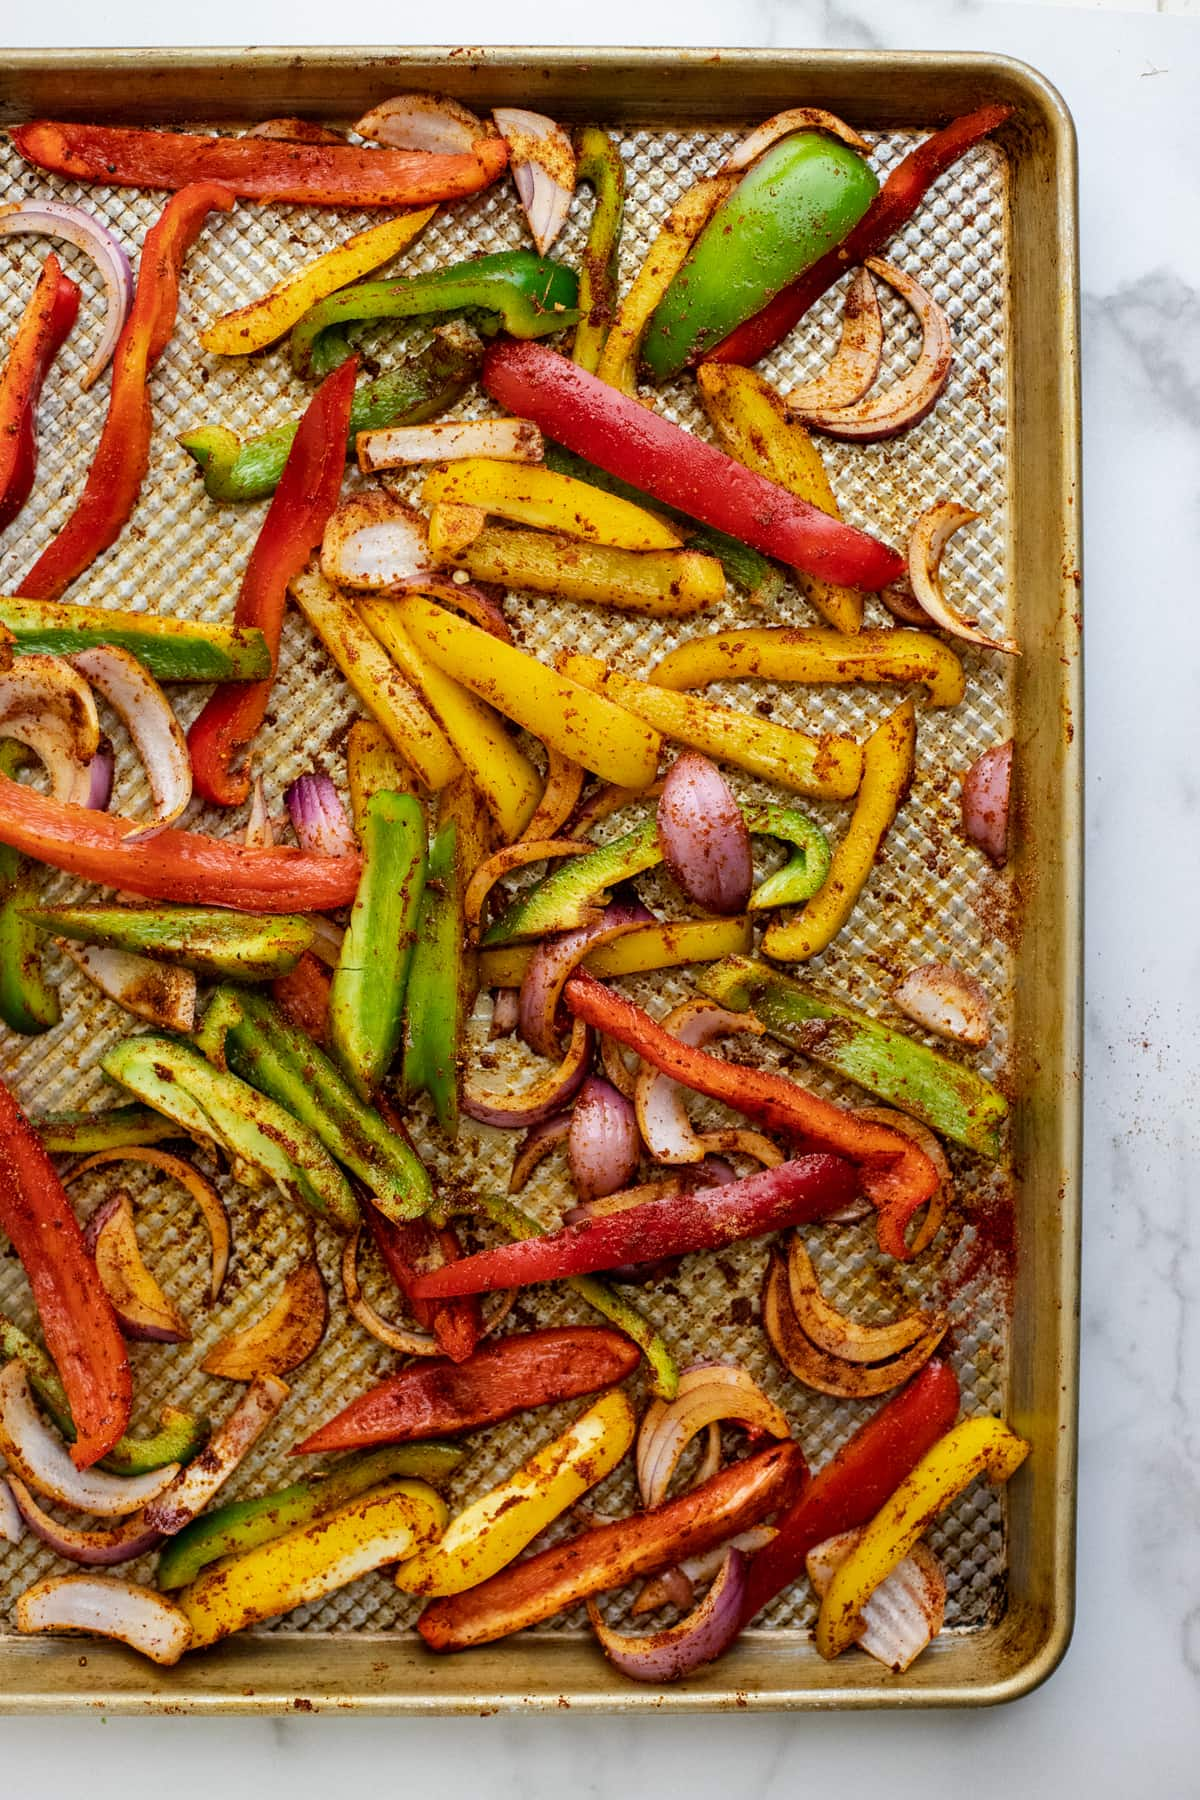 Copper sheet pan with roasted colored black peppers on it.